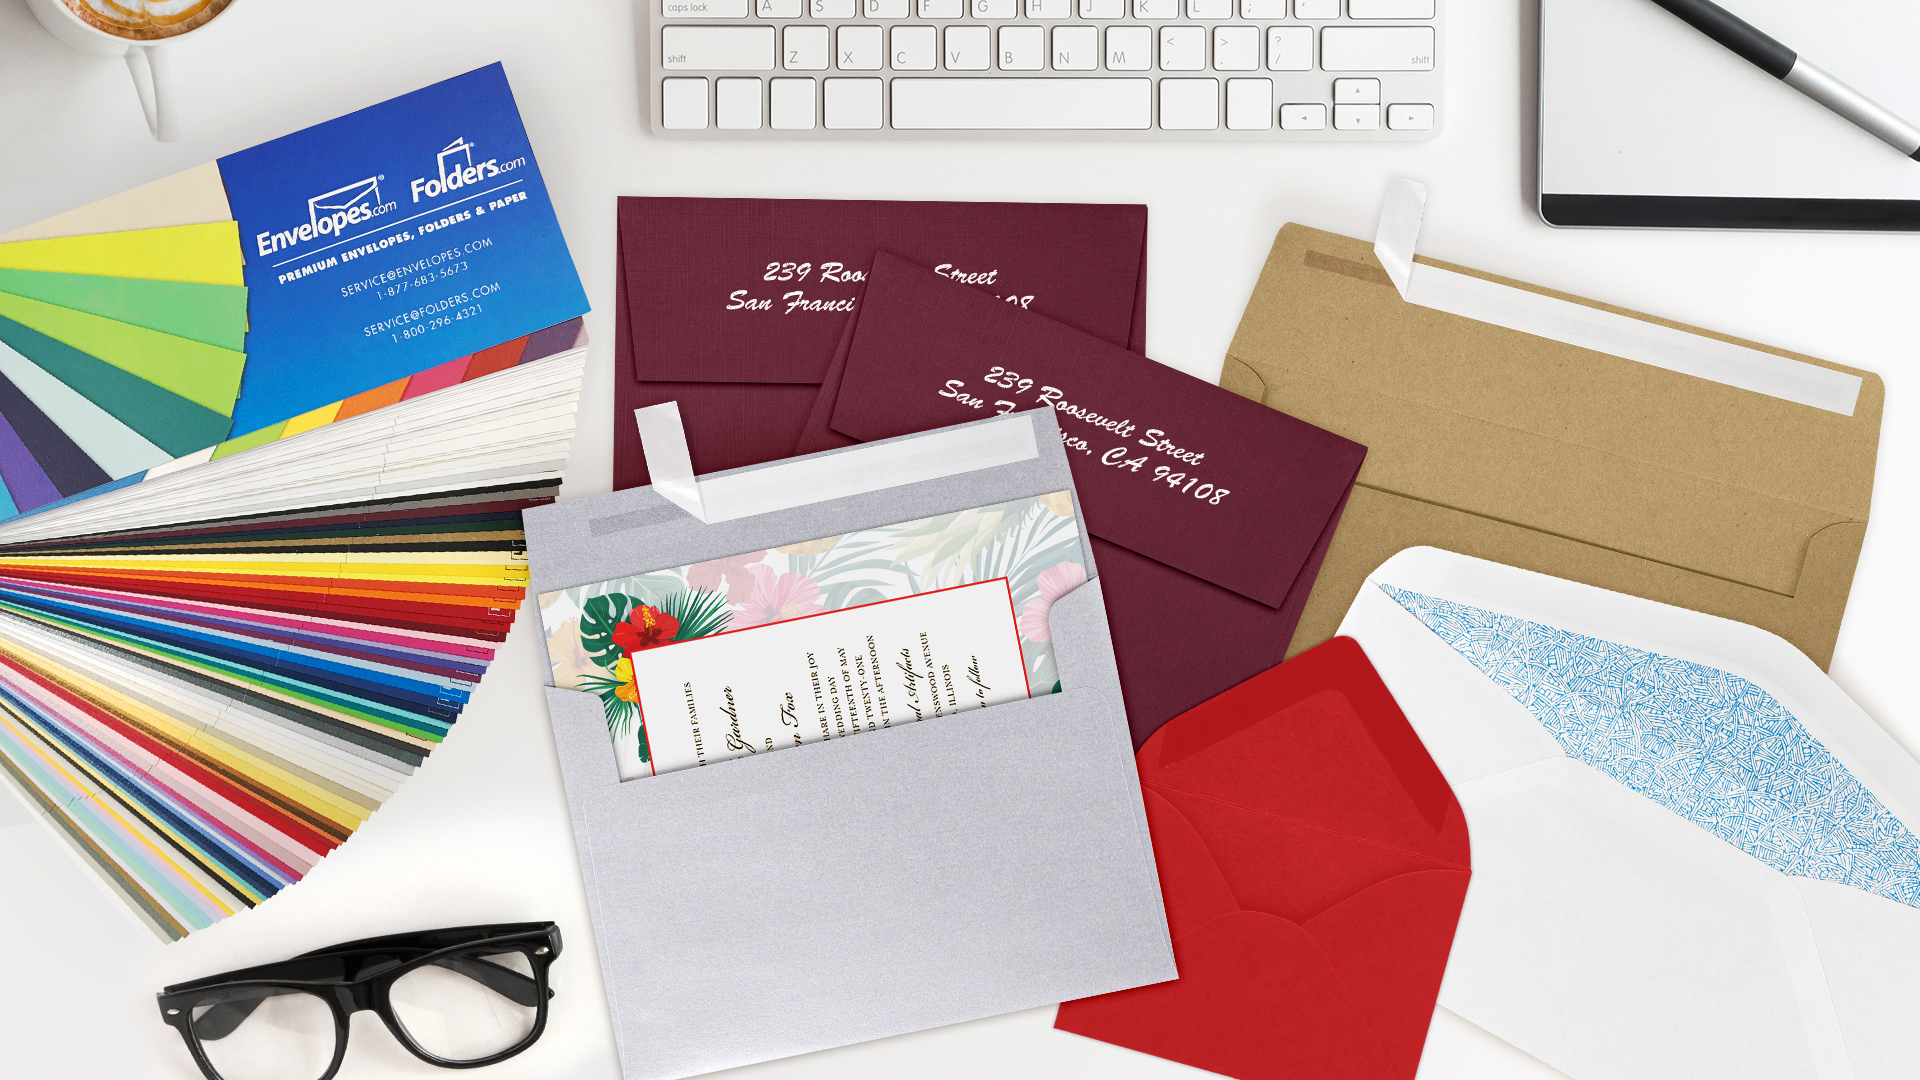 Oh-So-Handy Envelopes.com Swatchbook - PaperSpecs